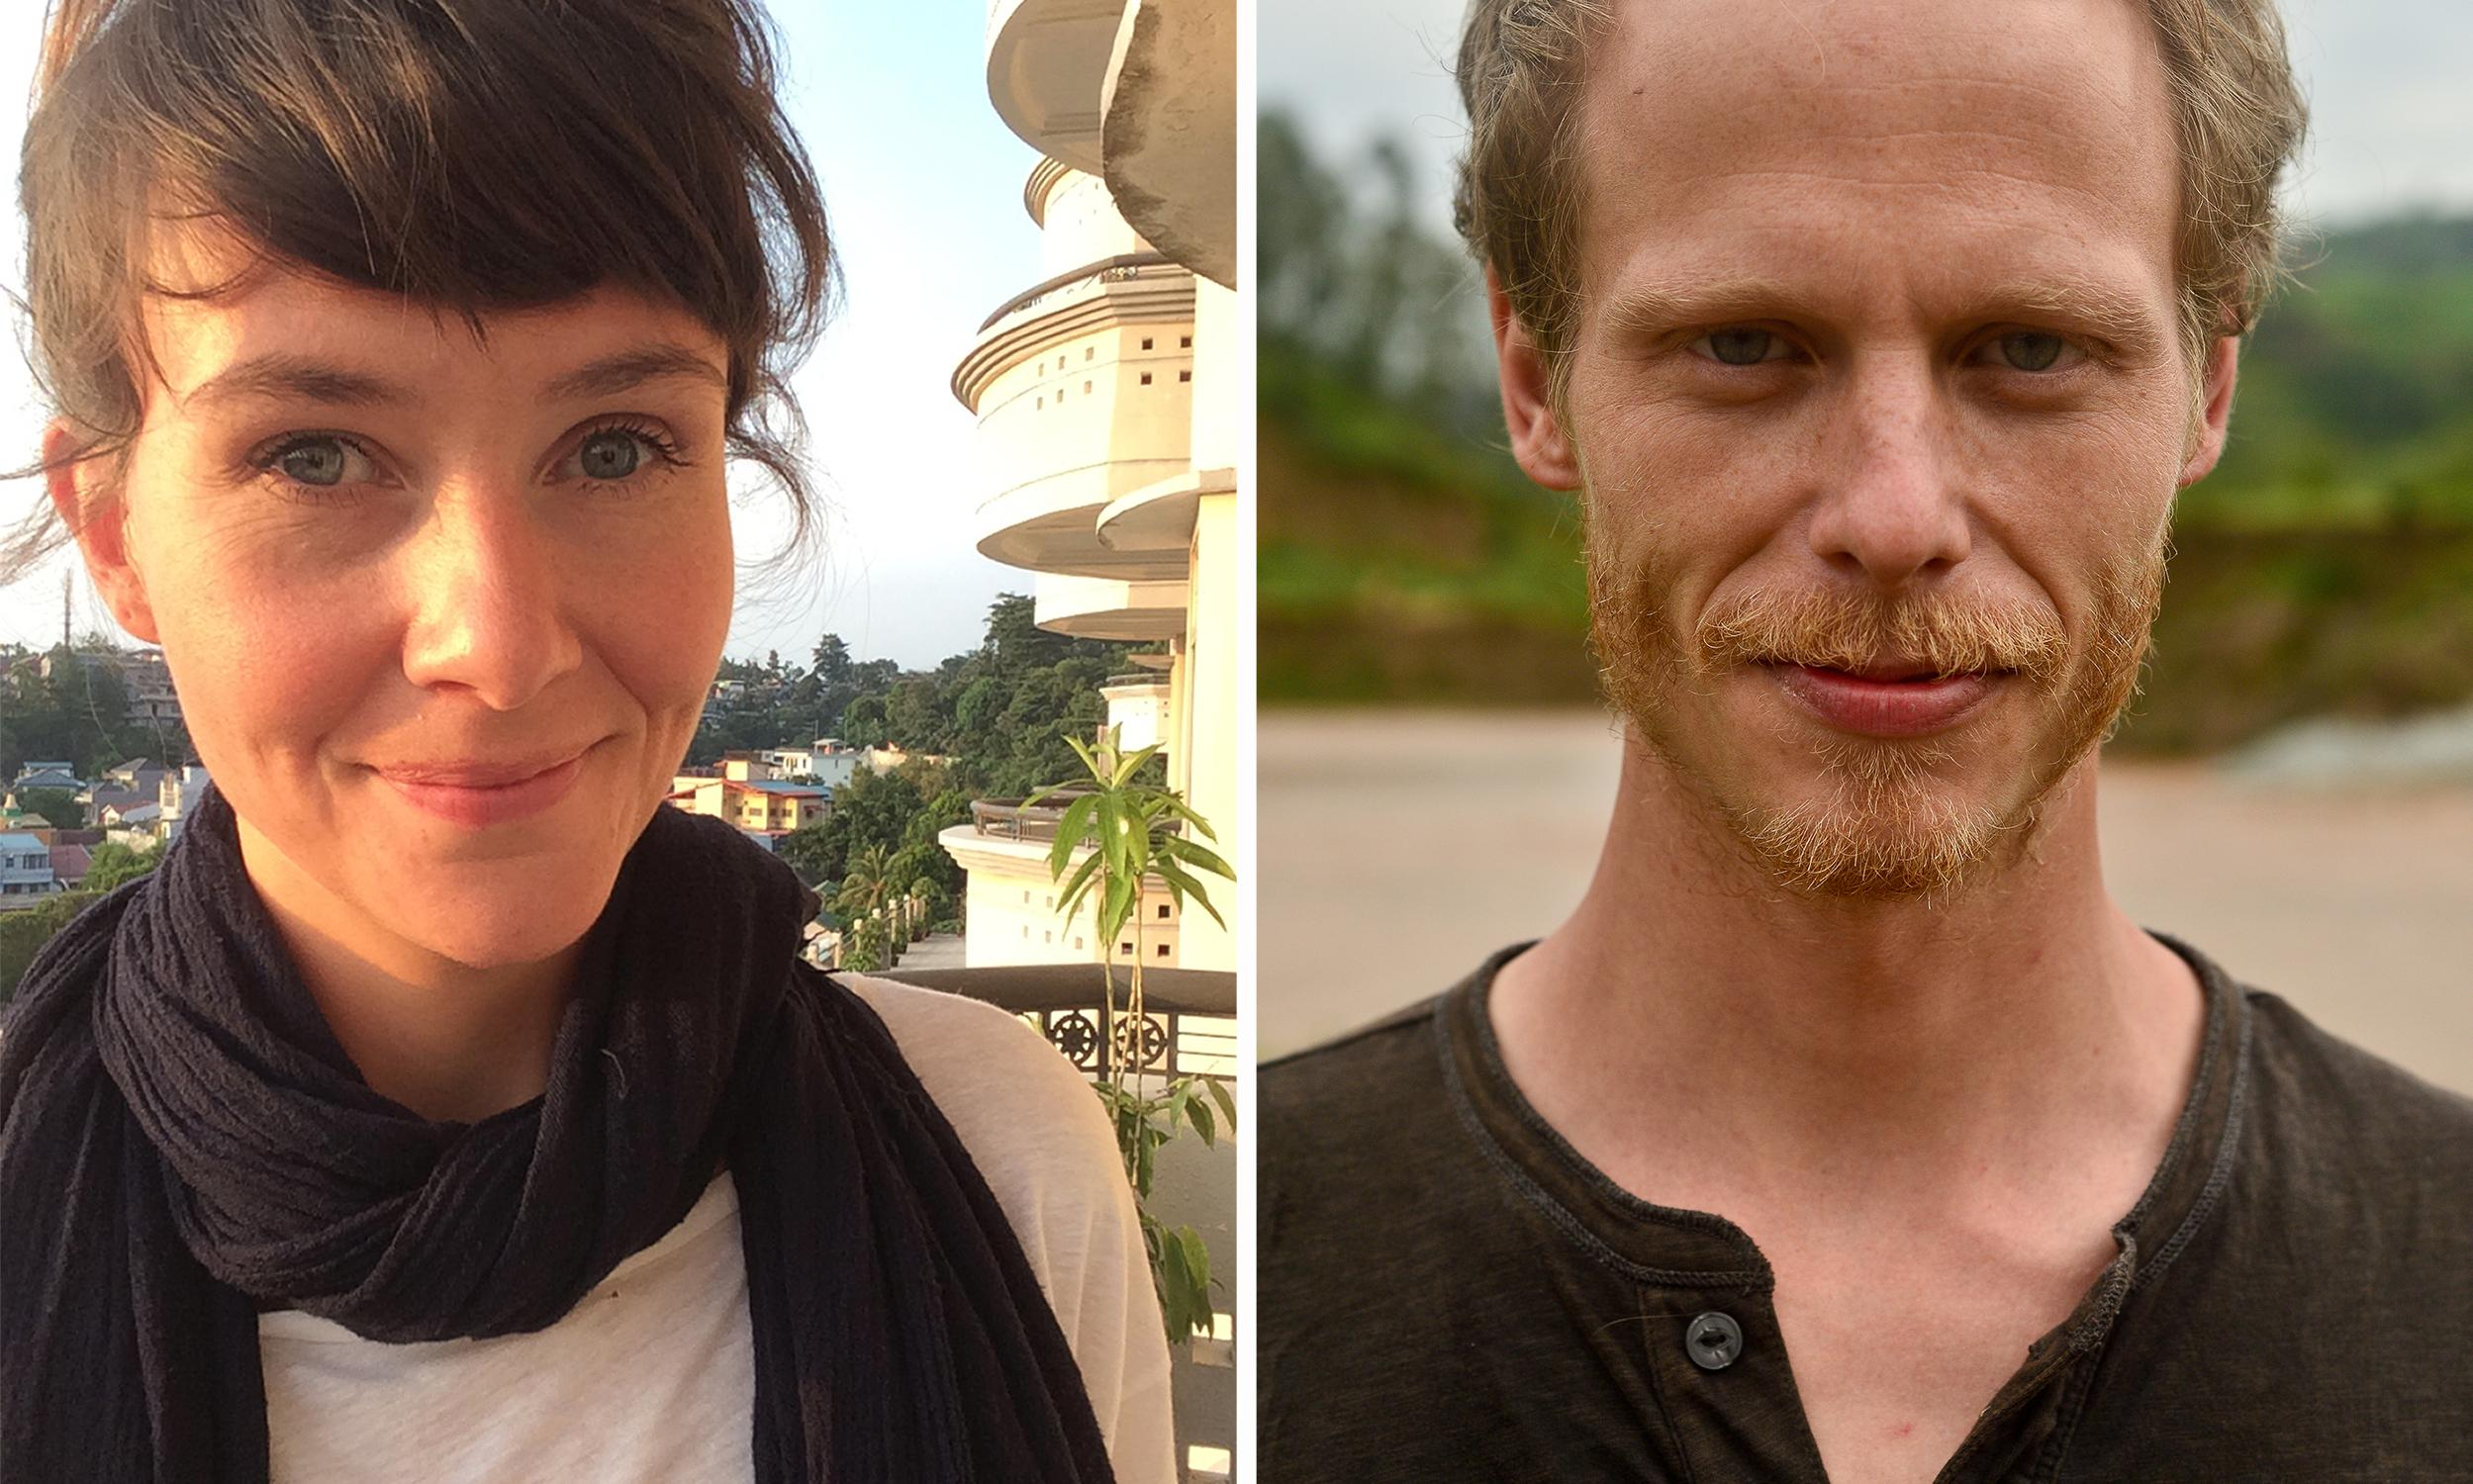 British journalists face five years in Indonesian jail for visa violation